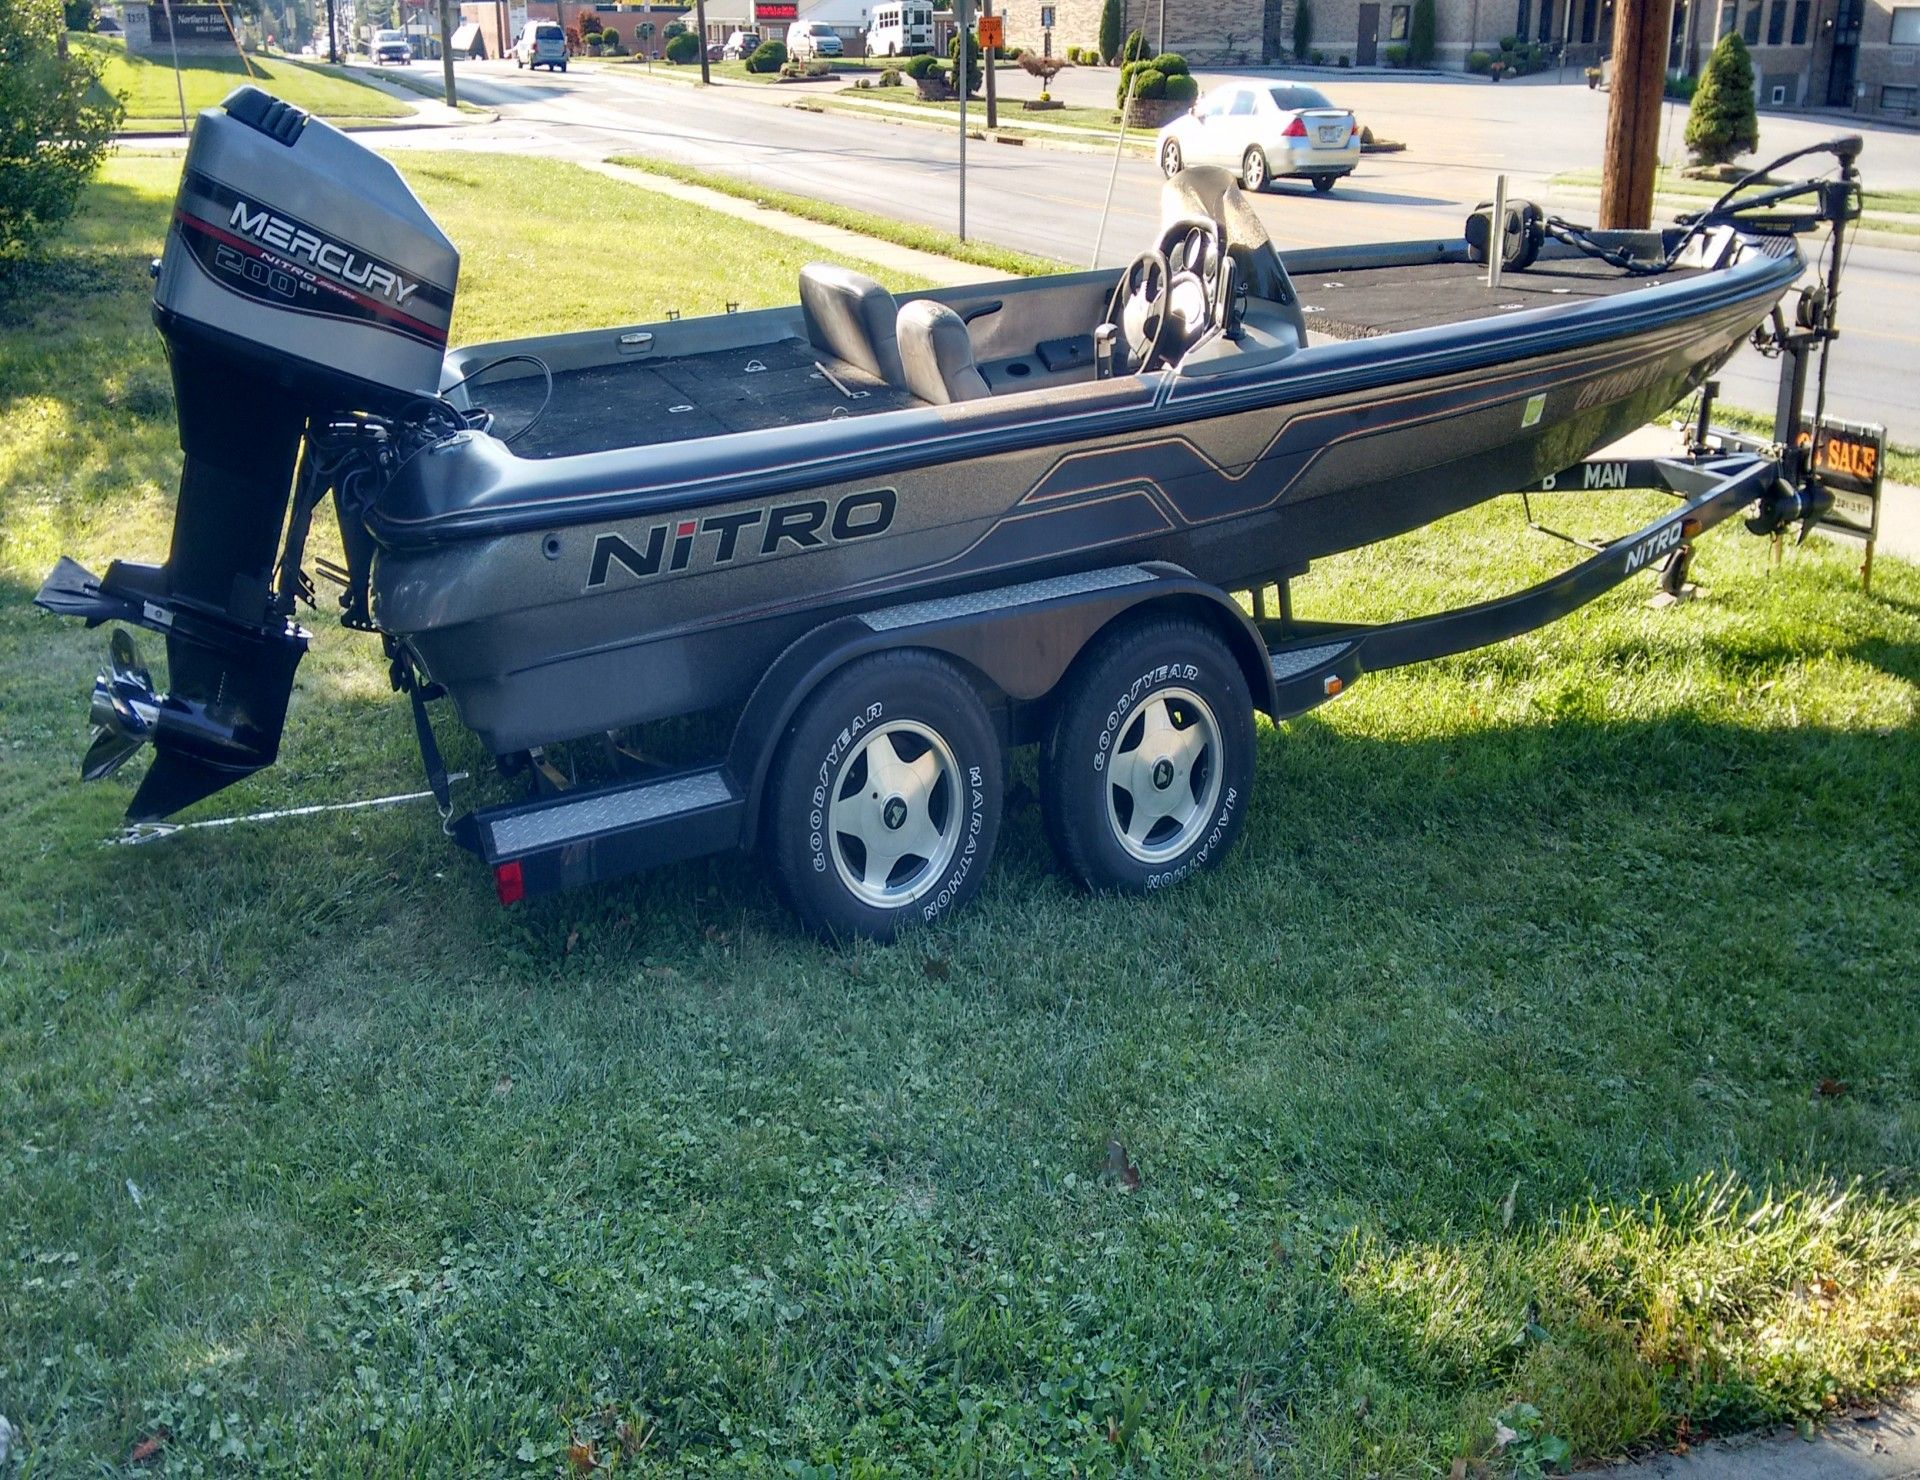 200 hp mercury efi outboard 2 stroke automatic oil mix 1996 twin axle trailer with swing away tongue surge brakes engine recently serviced with  [ 1920 x 1480 Pixel ]